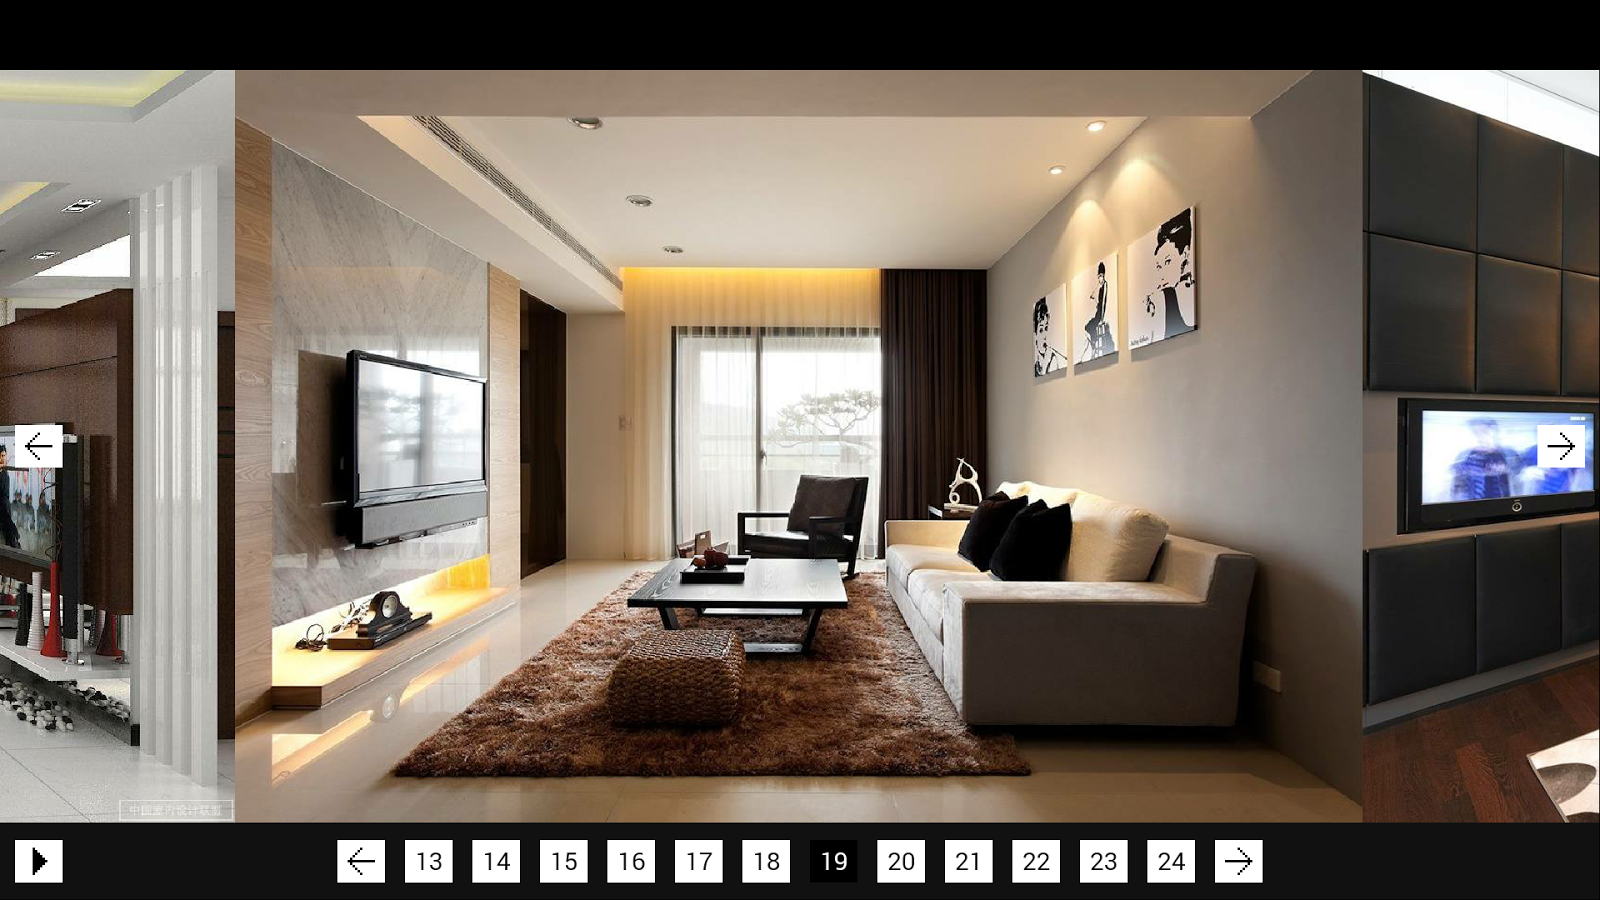 Home interior design android apps on google play for Home interiors ideas photos